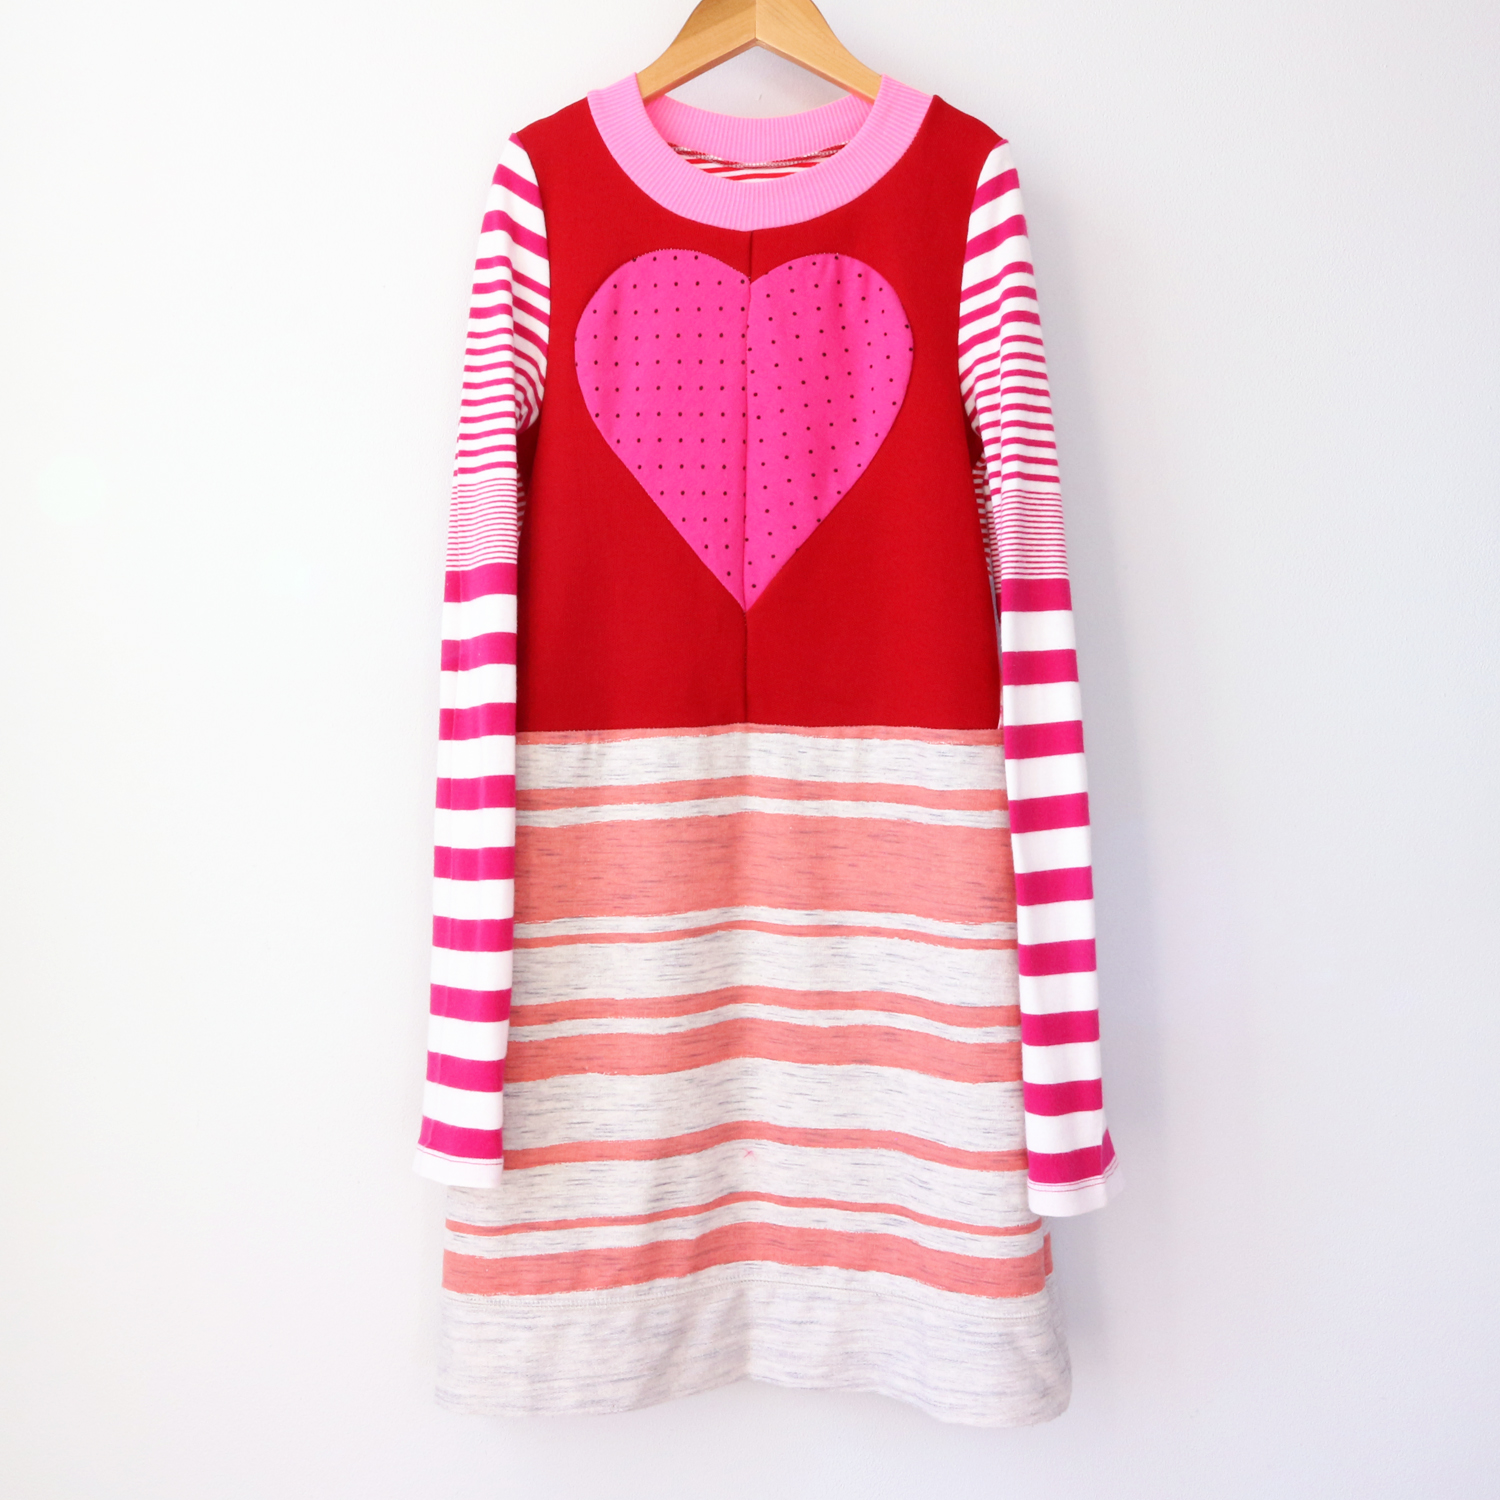 8:10 red:pink:patchwork:heart:stripes:ls.jpg